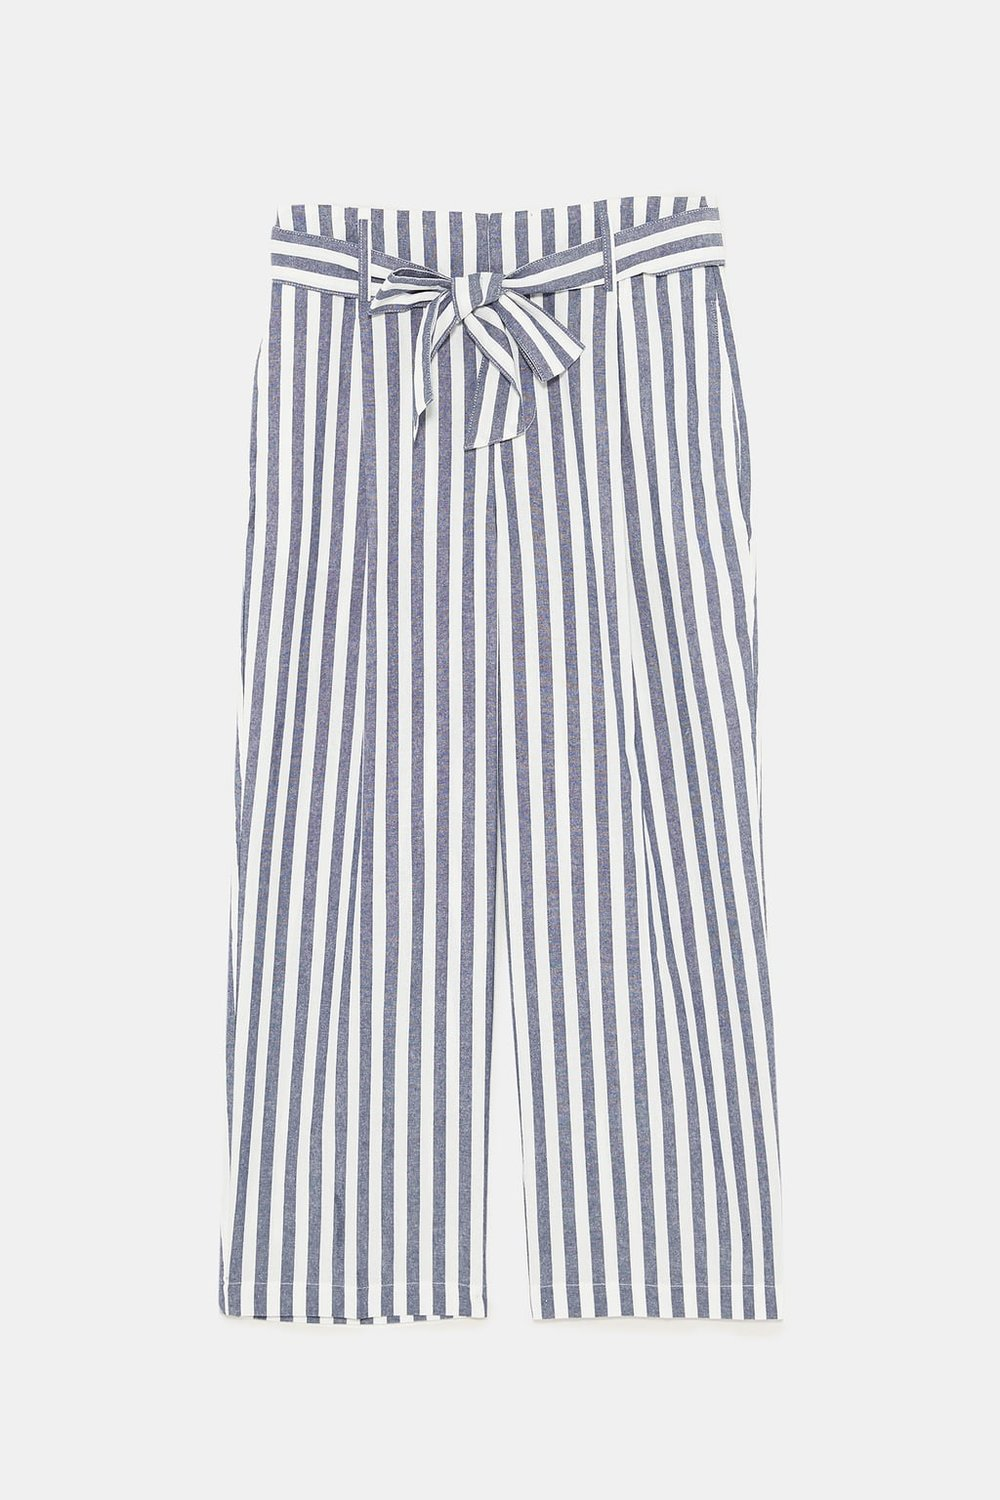 - High waist pants with self belt. Front pleats. Side pockets and false back welt pocket. Front zipper and metal hook closure. $39